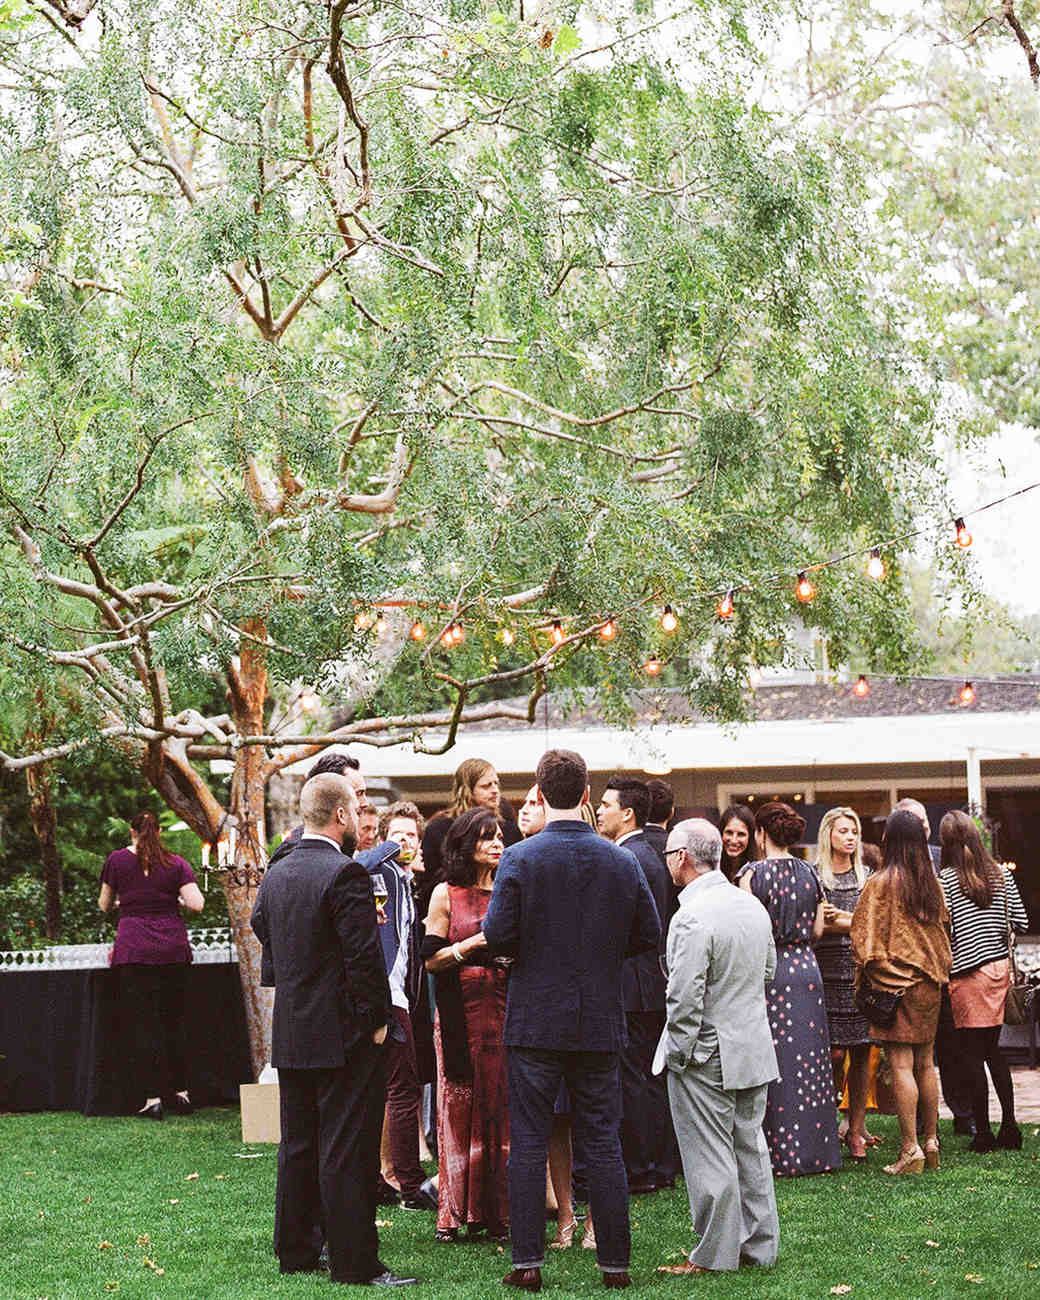 Guests Mingling During Cocktail Hour